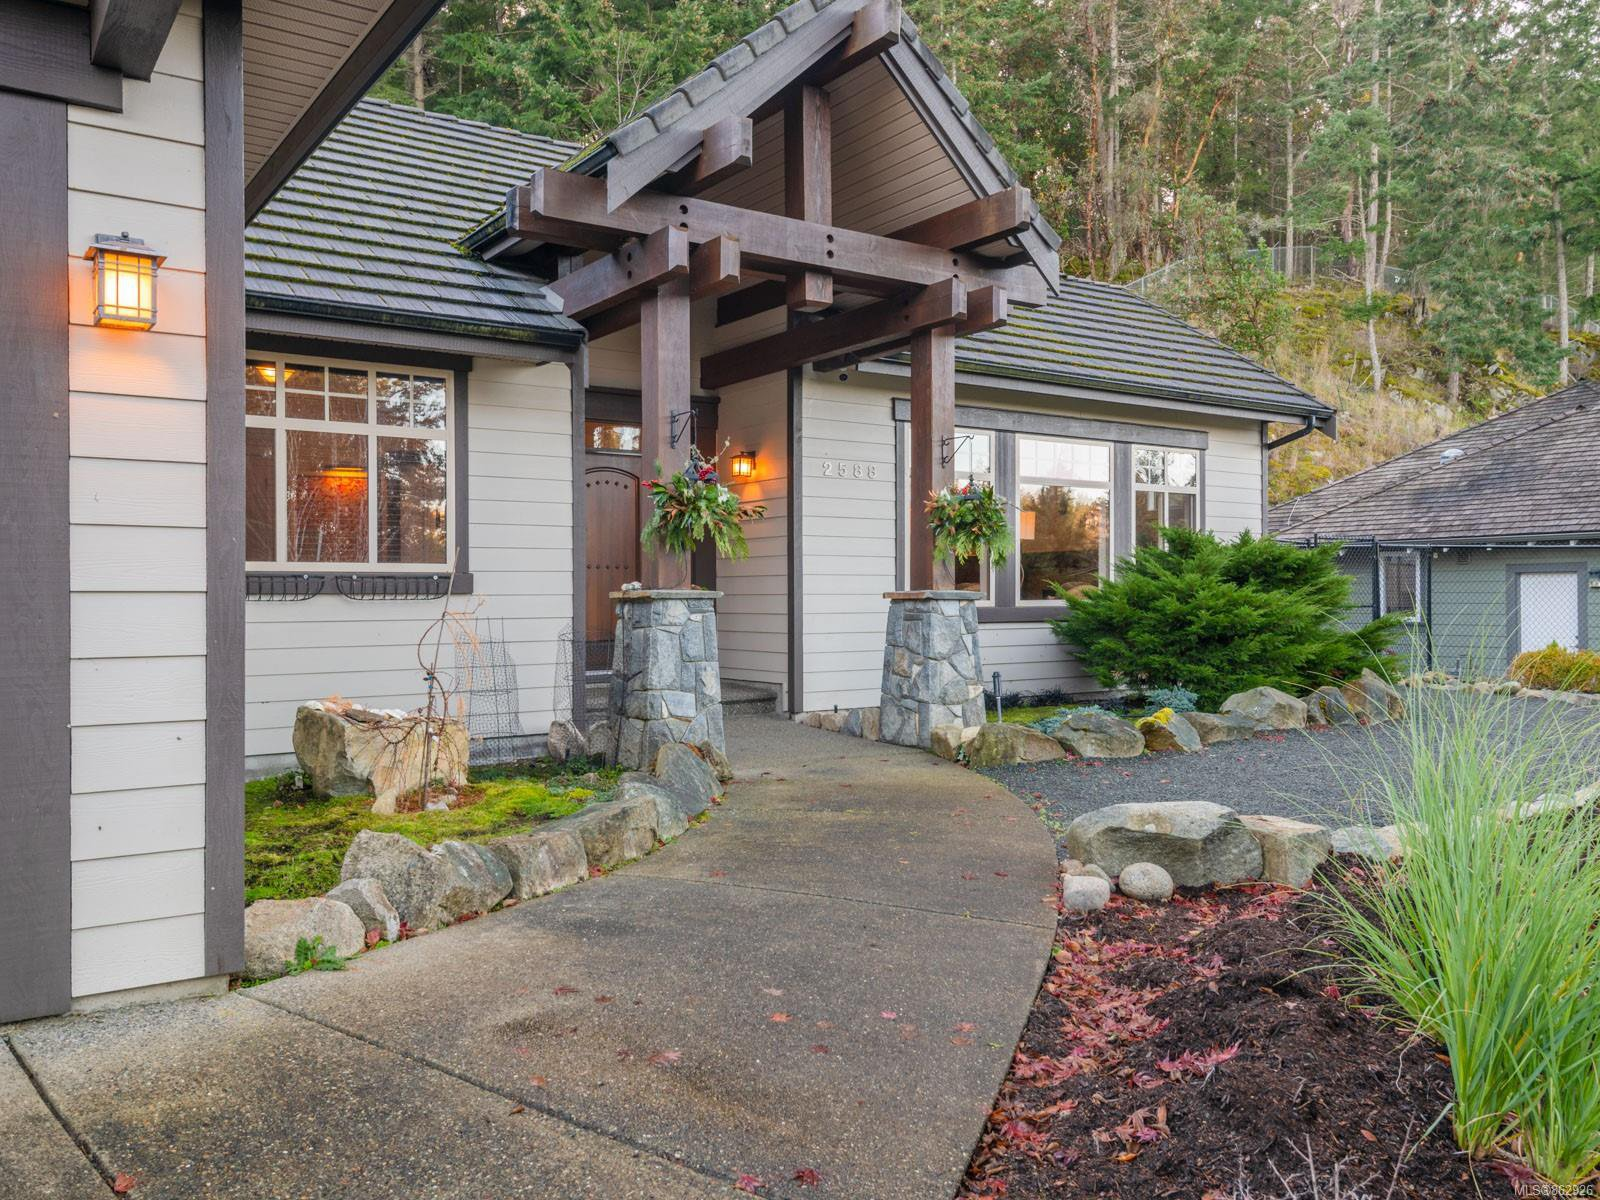 Main Photo: 2588 Andover Rd in : PQ Fairwinds House for sale (Parksville/Qualicum)  : MLS®# 862926